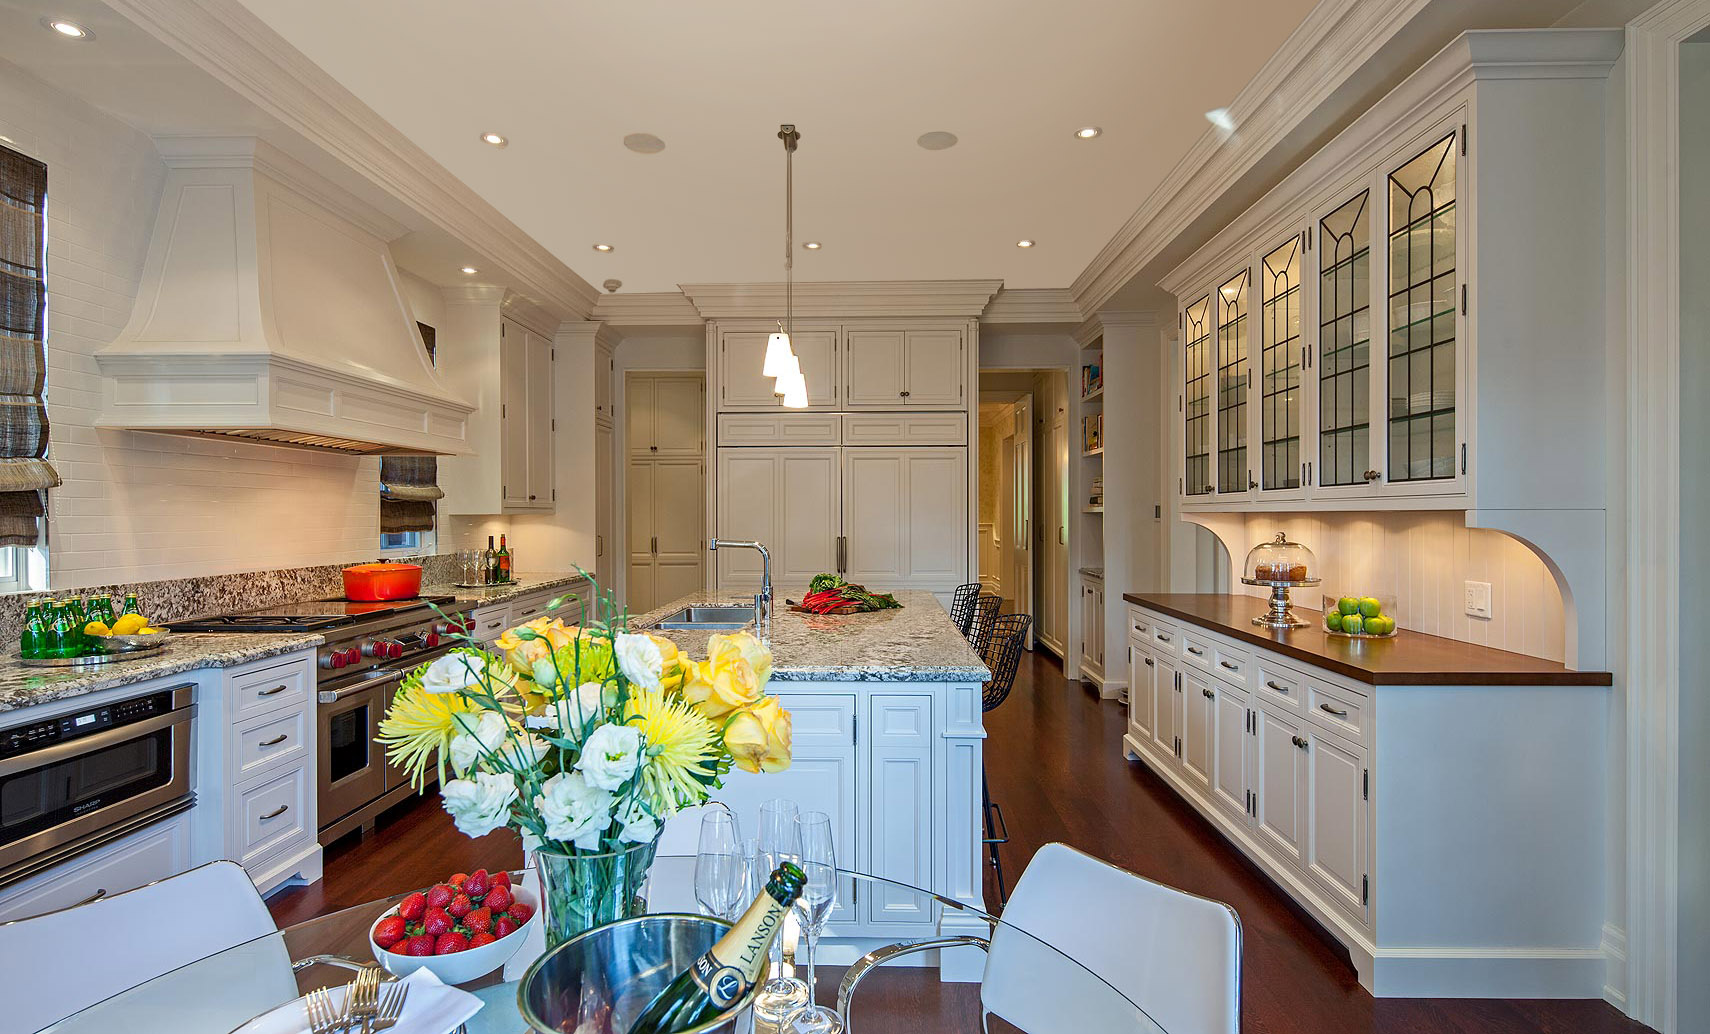 The carefully designed cabinetry includes a large unit designed to look like a freestanding hutch, with its furniture-like base detail, brackets, black-leaded glazing and wooden counter top.